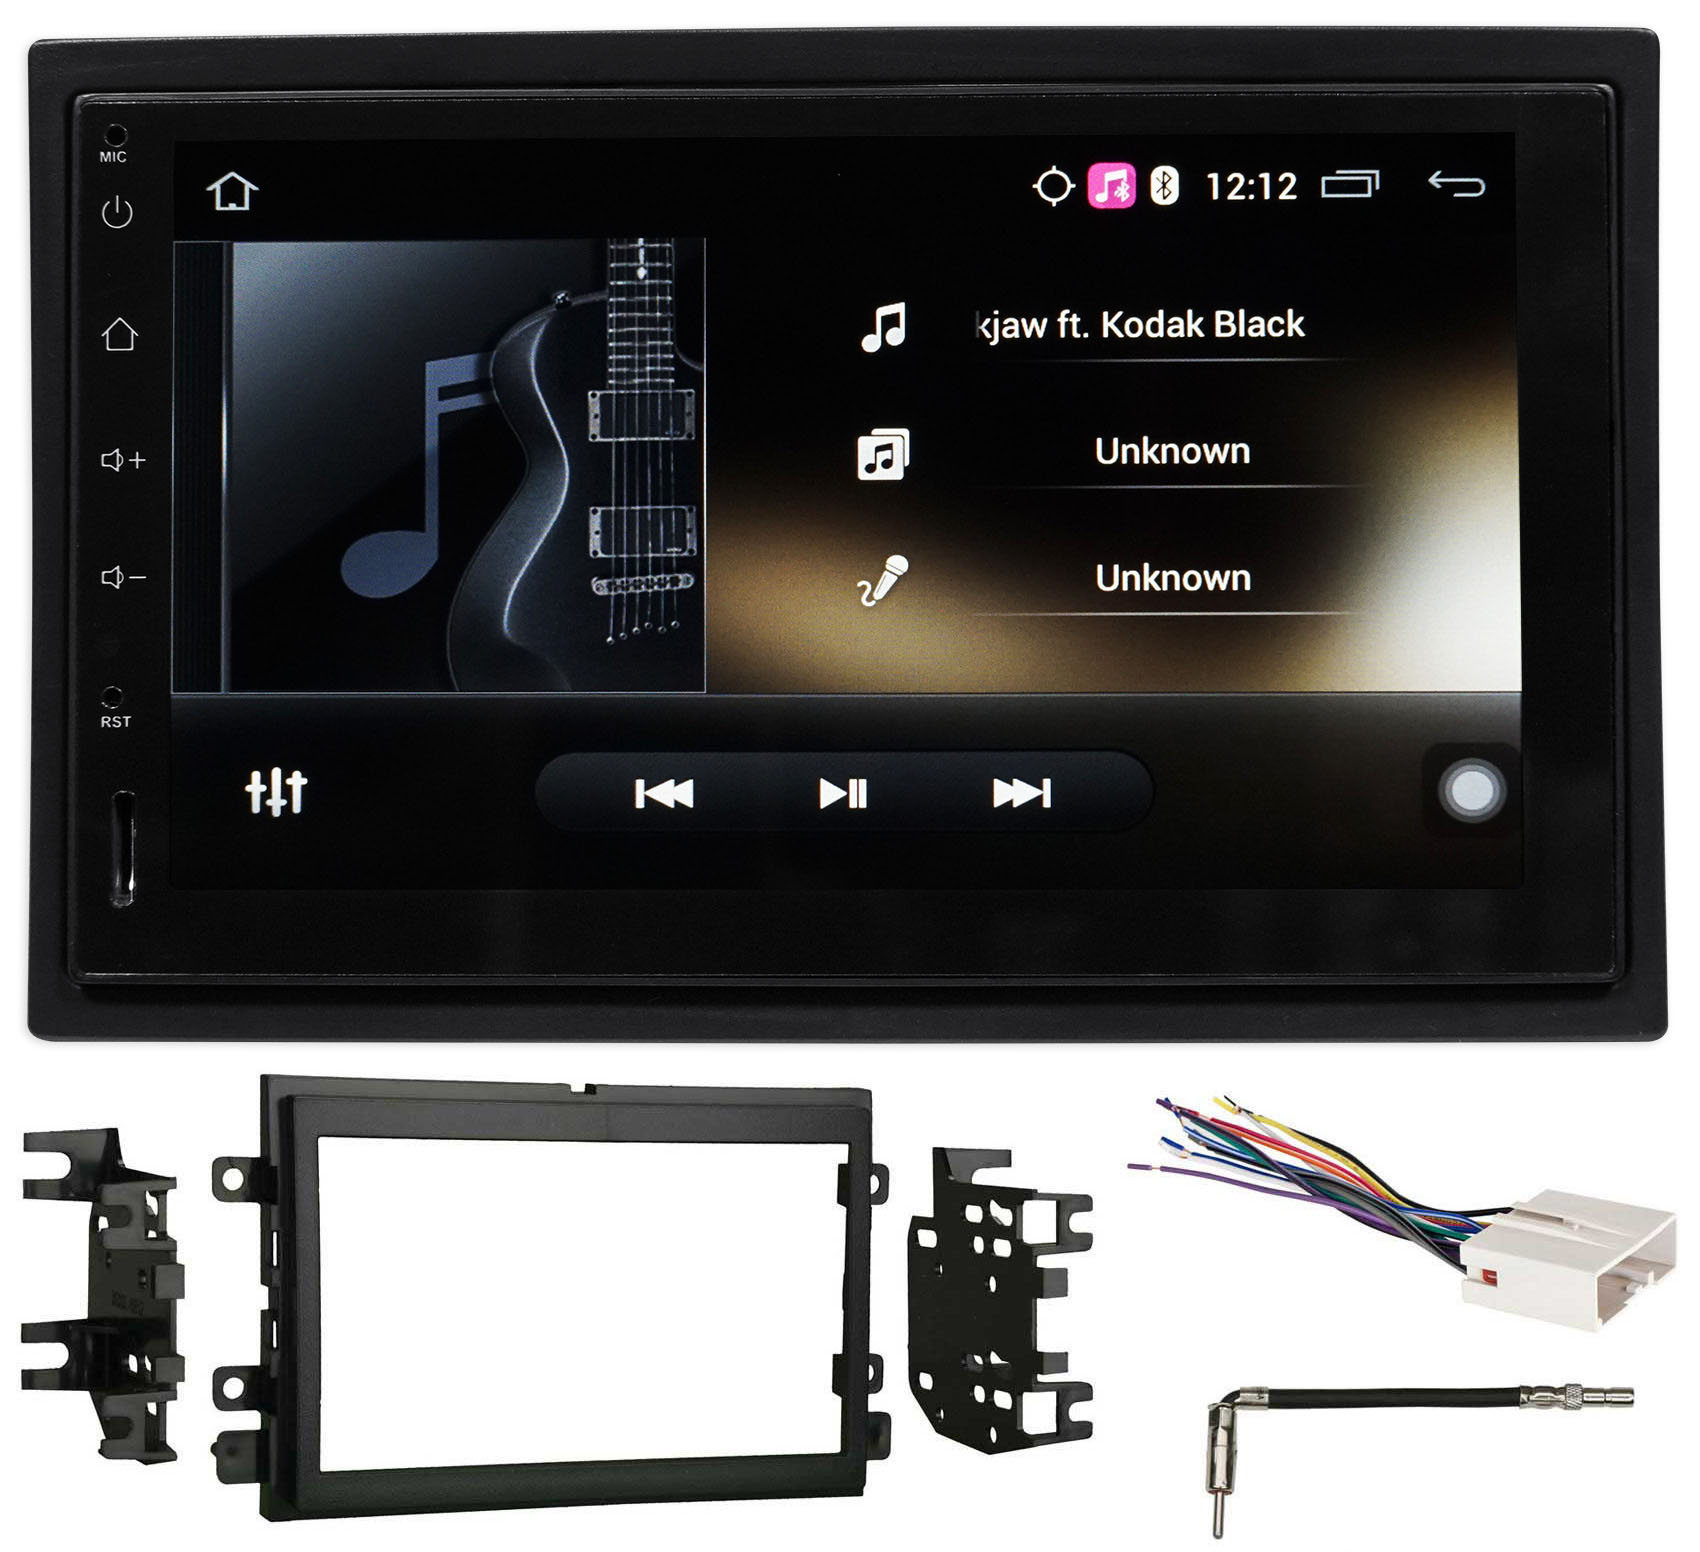 Car Navigation/Bluetooth/Wifi/Android Receiver For 2007 Ford Mustang